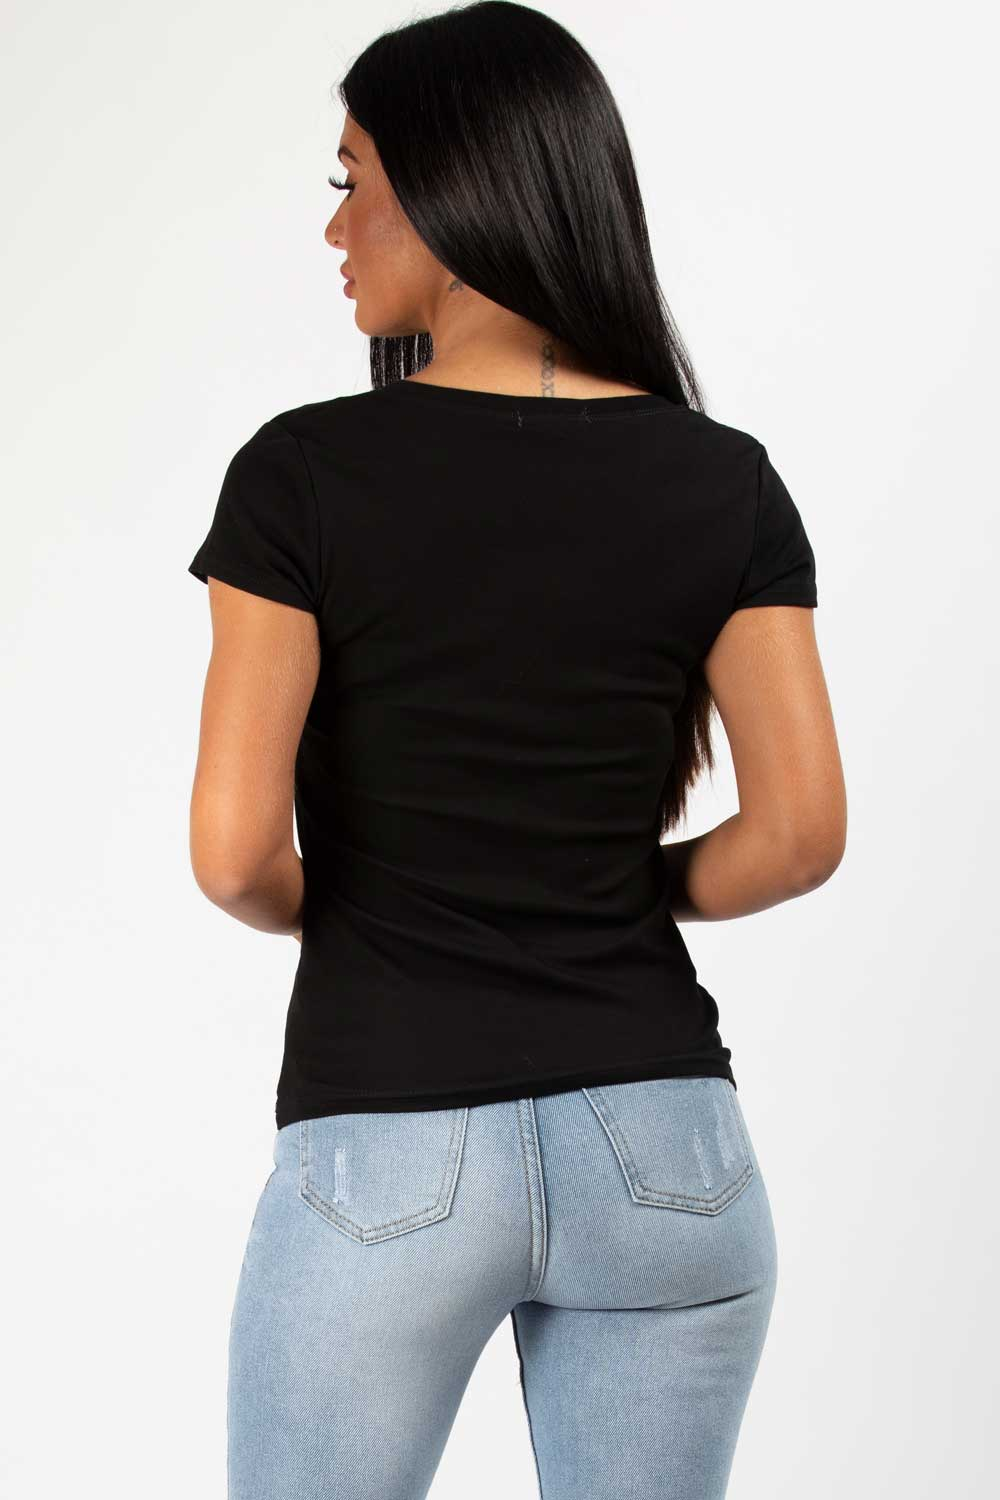 womens black t shirt